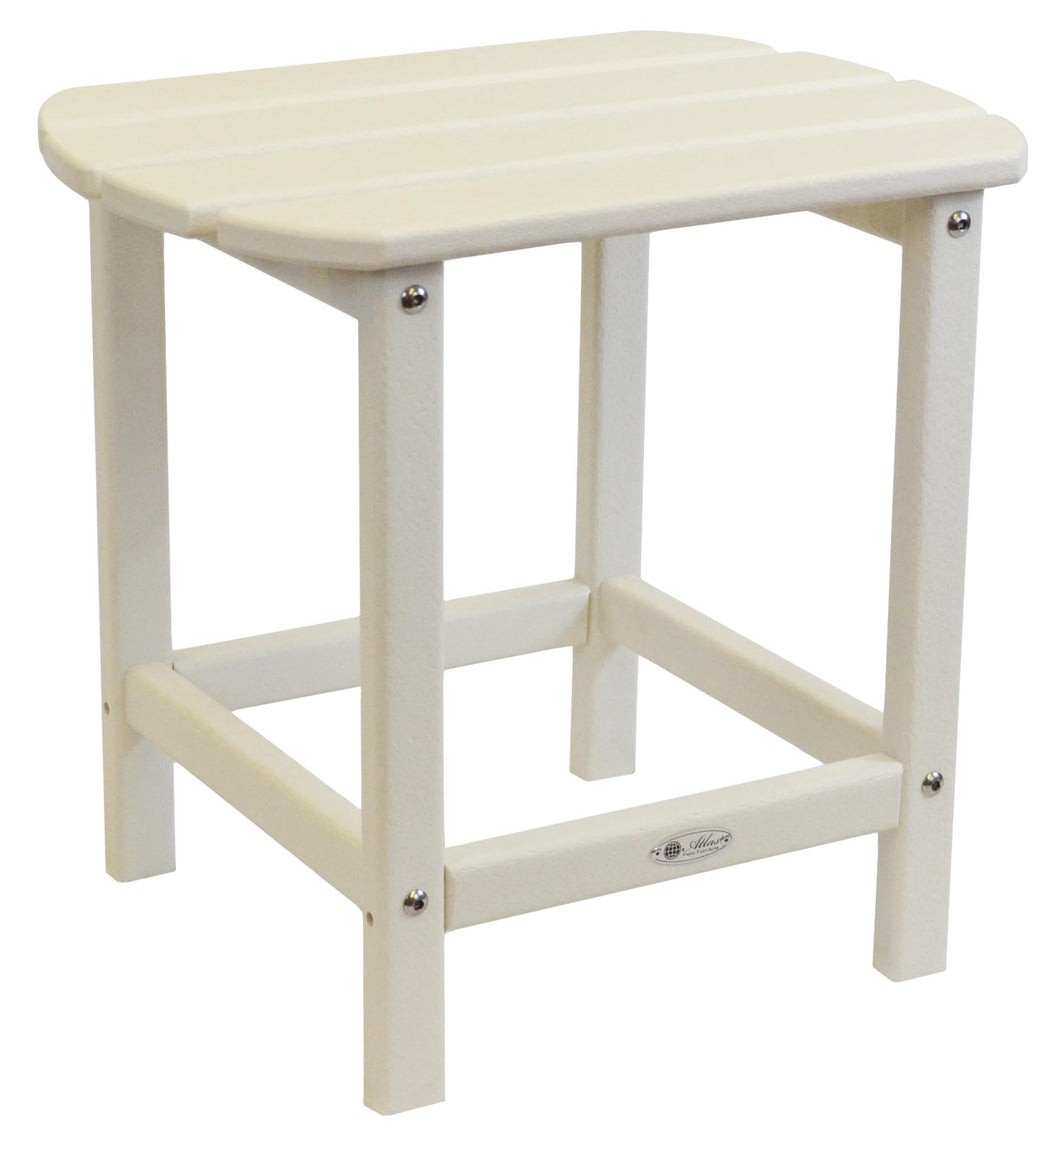 Atlas Patio Furniture - Beach Haven Poly End Table - Color: White